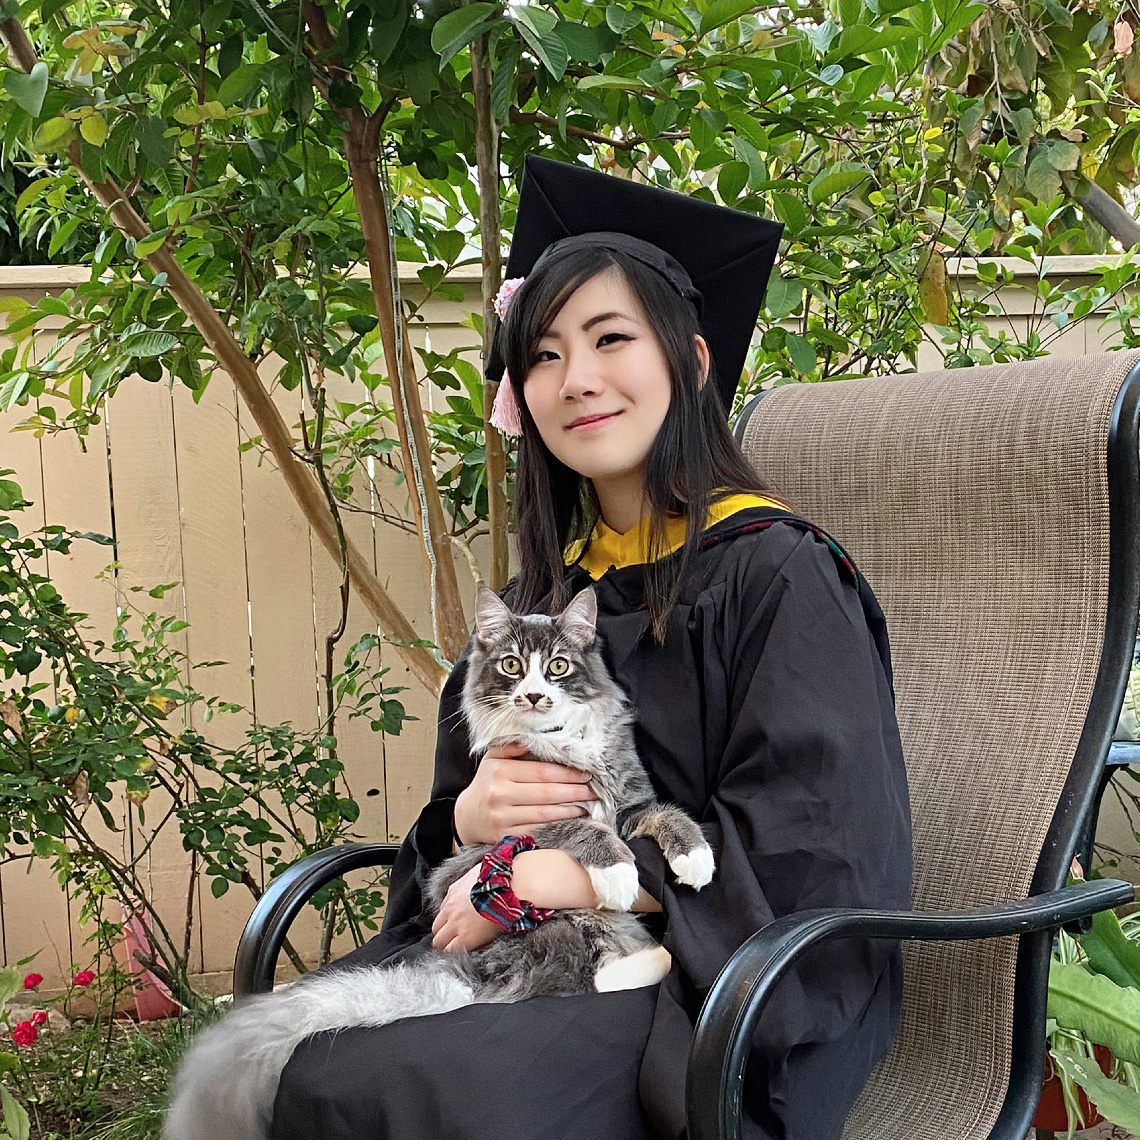 Connie is wearing her black CMU cap and gown. She is sitting outdoors in a chair and holding her cat.